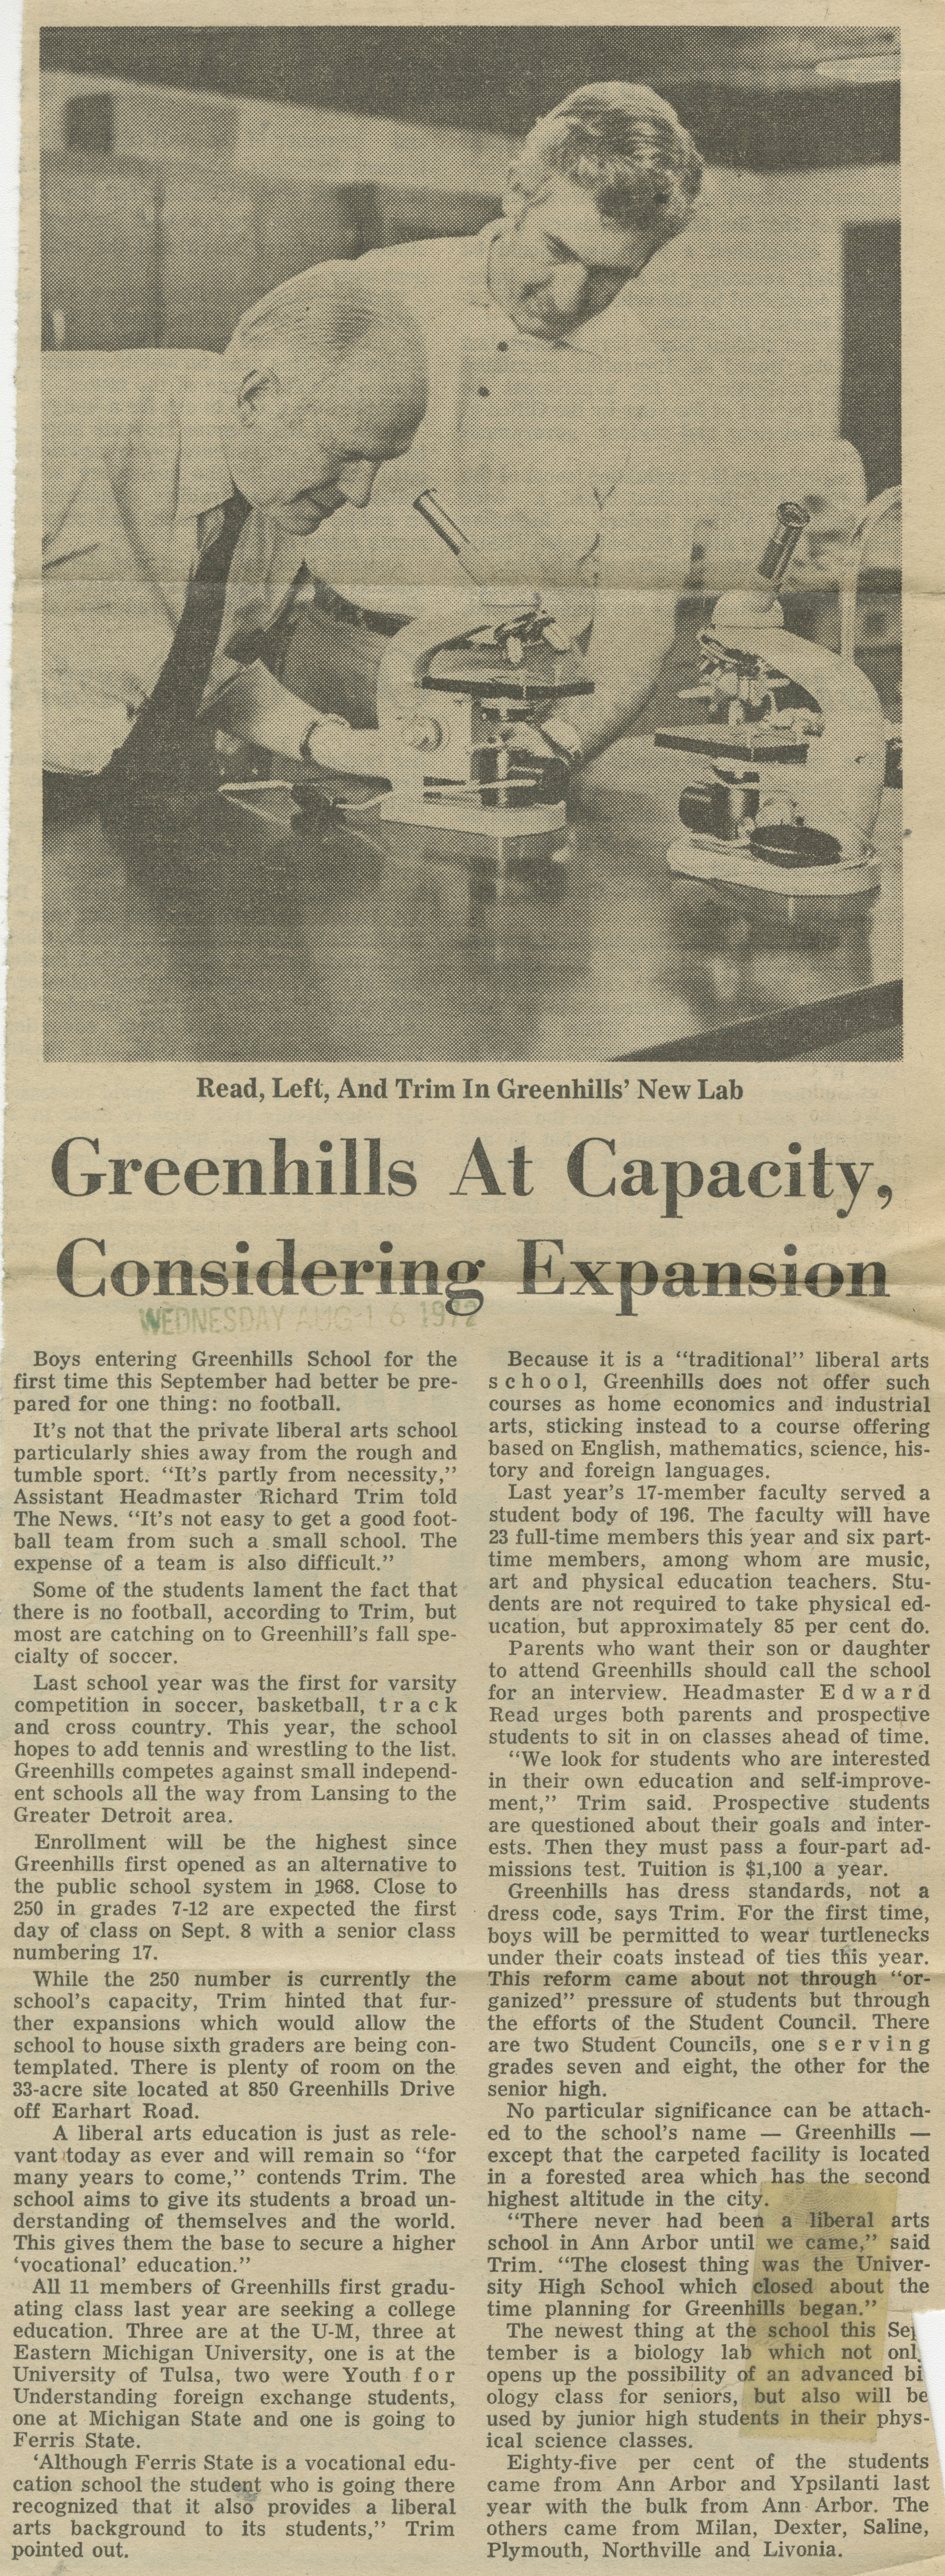 Greenhills At Capacity, Considering Expansion image